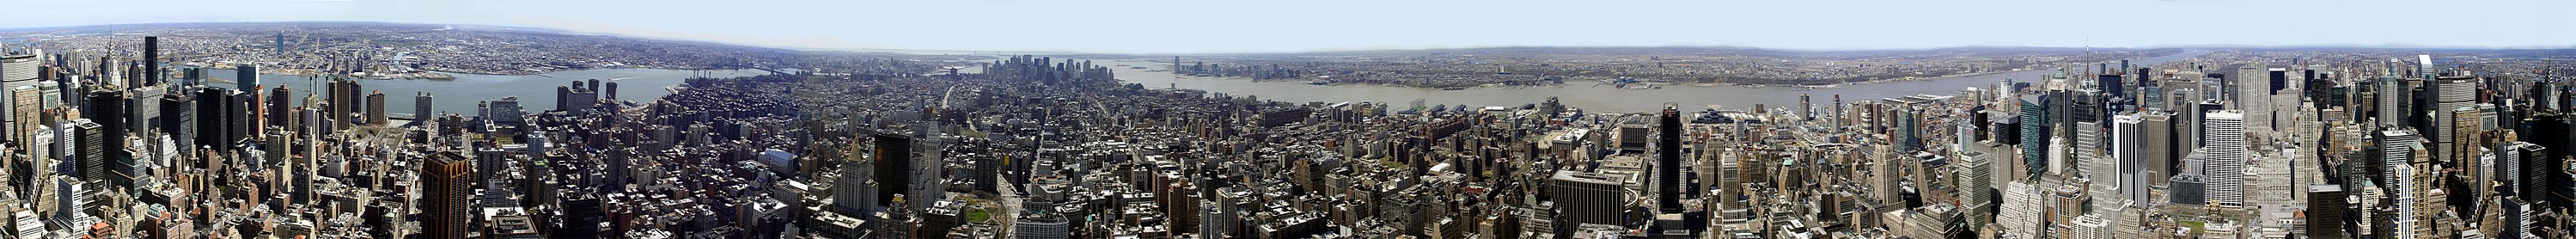 360° panorama of New York City from Empire State Building in spring 2005.